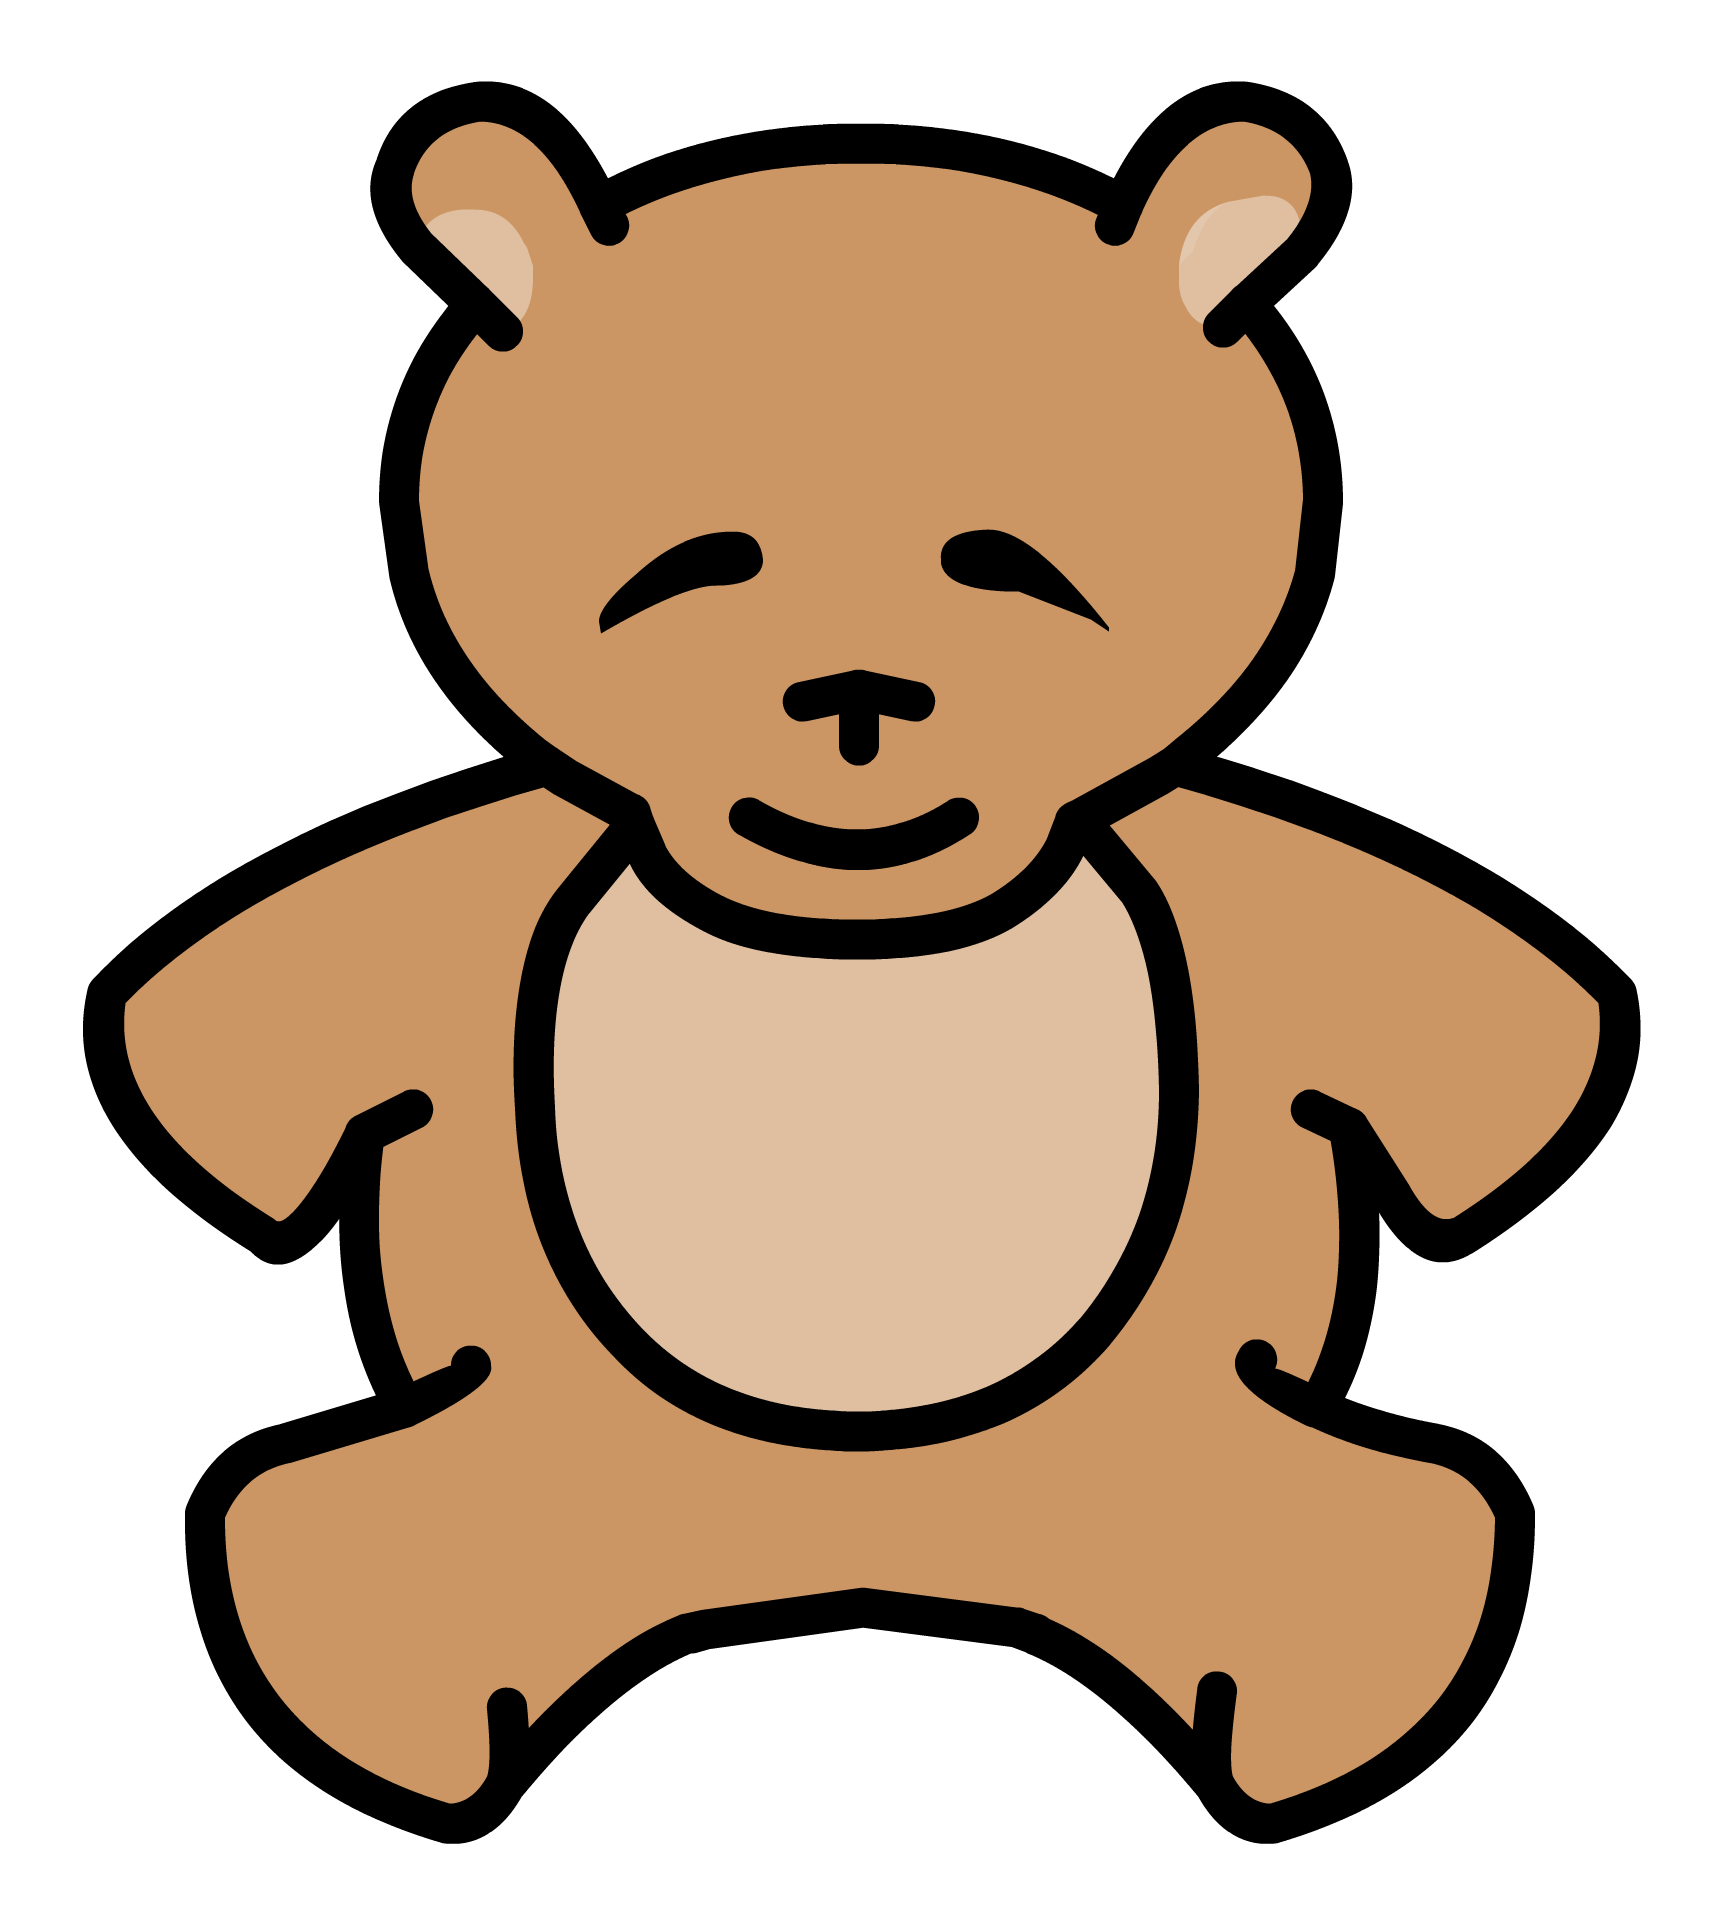 Marbles clipart rare. Image teddy bear pin